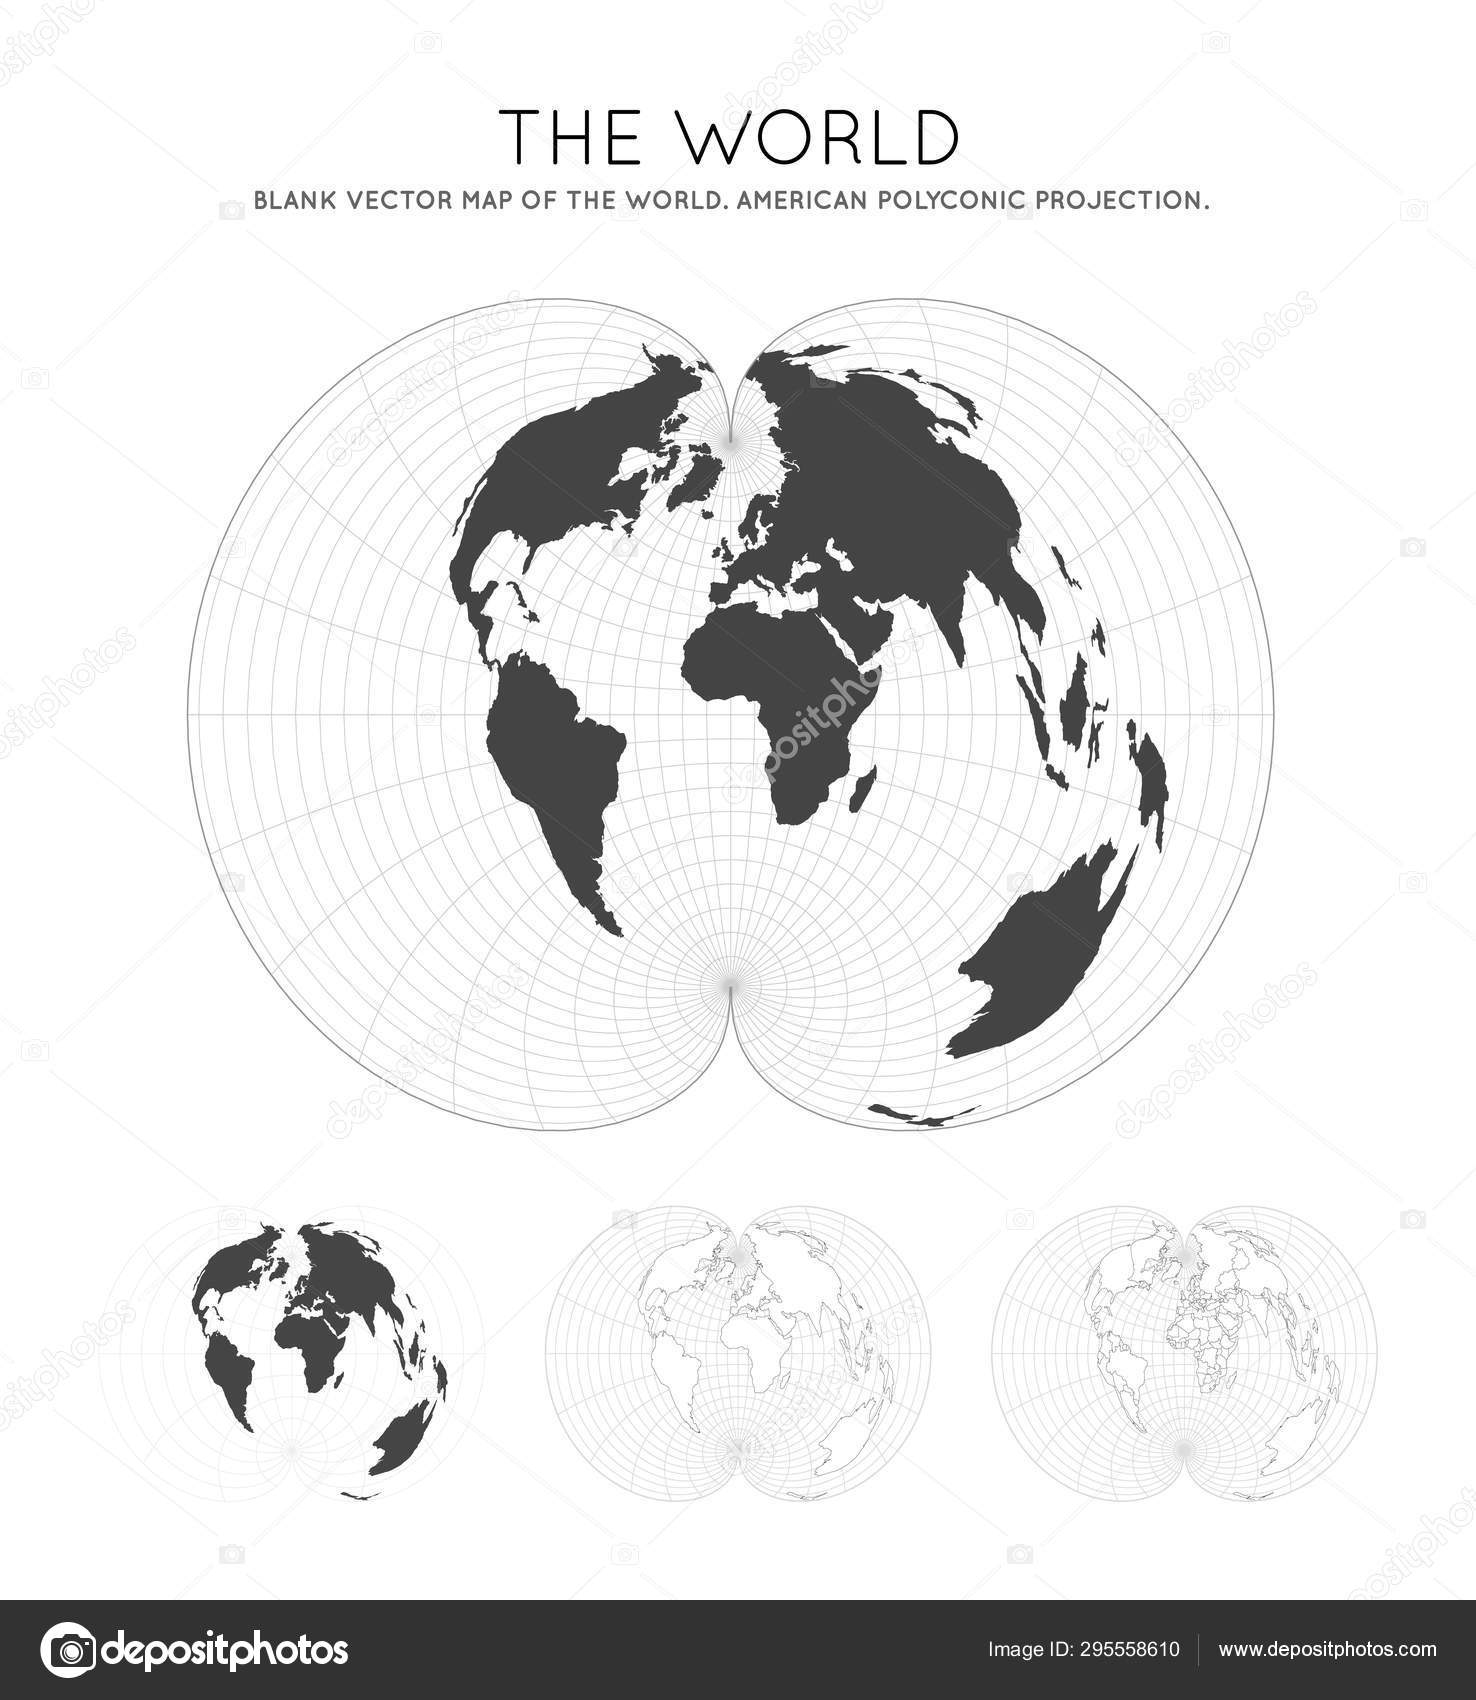 Picture of: Map Of The World American Polyconic Projection Globe With Latitude And Longitude Lines World Map Stock Vector C Gagarych 295558610